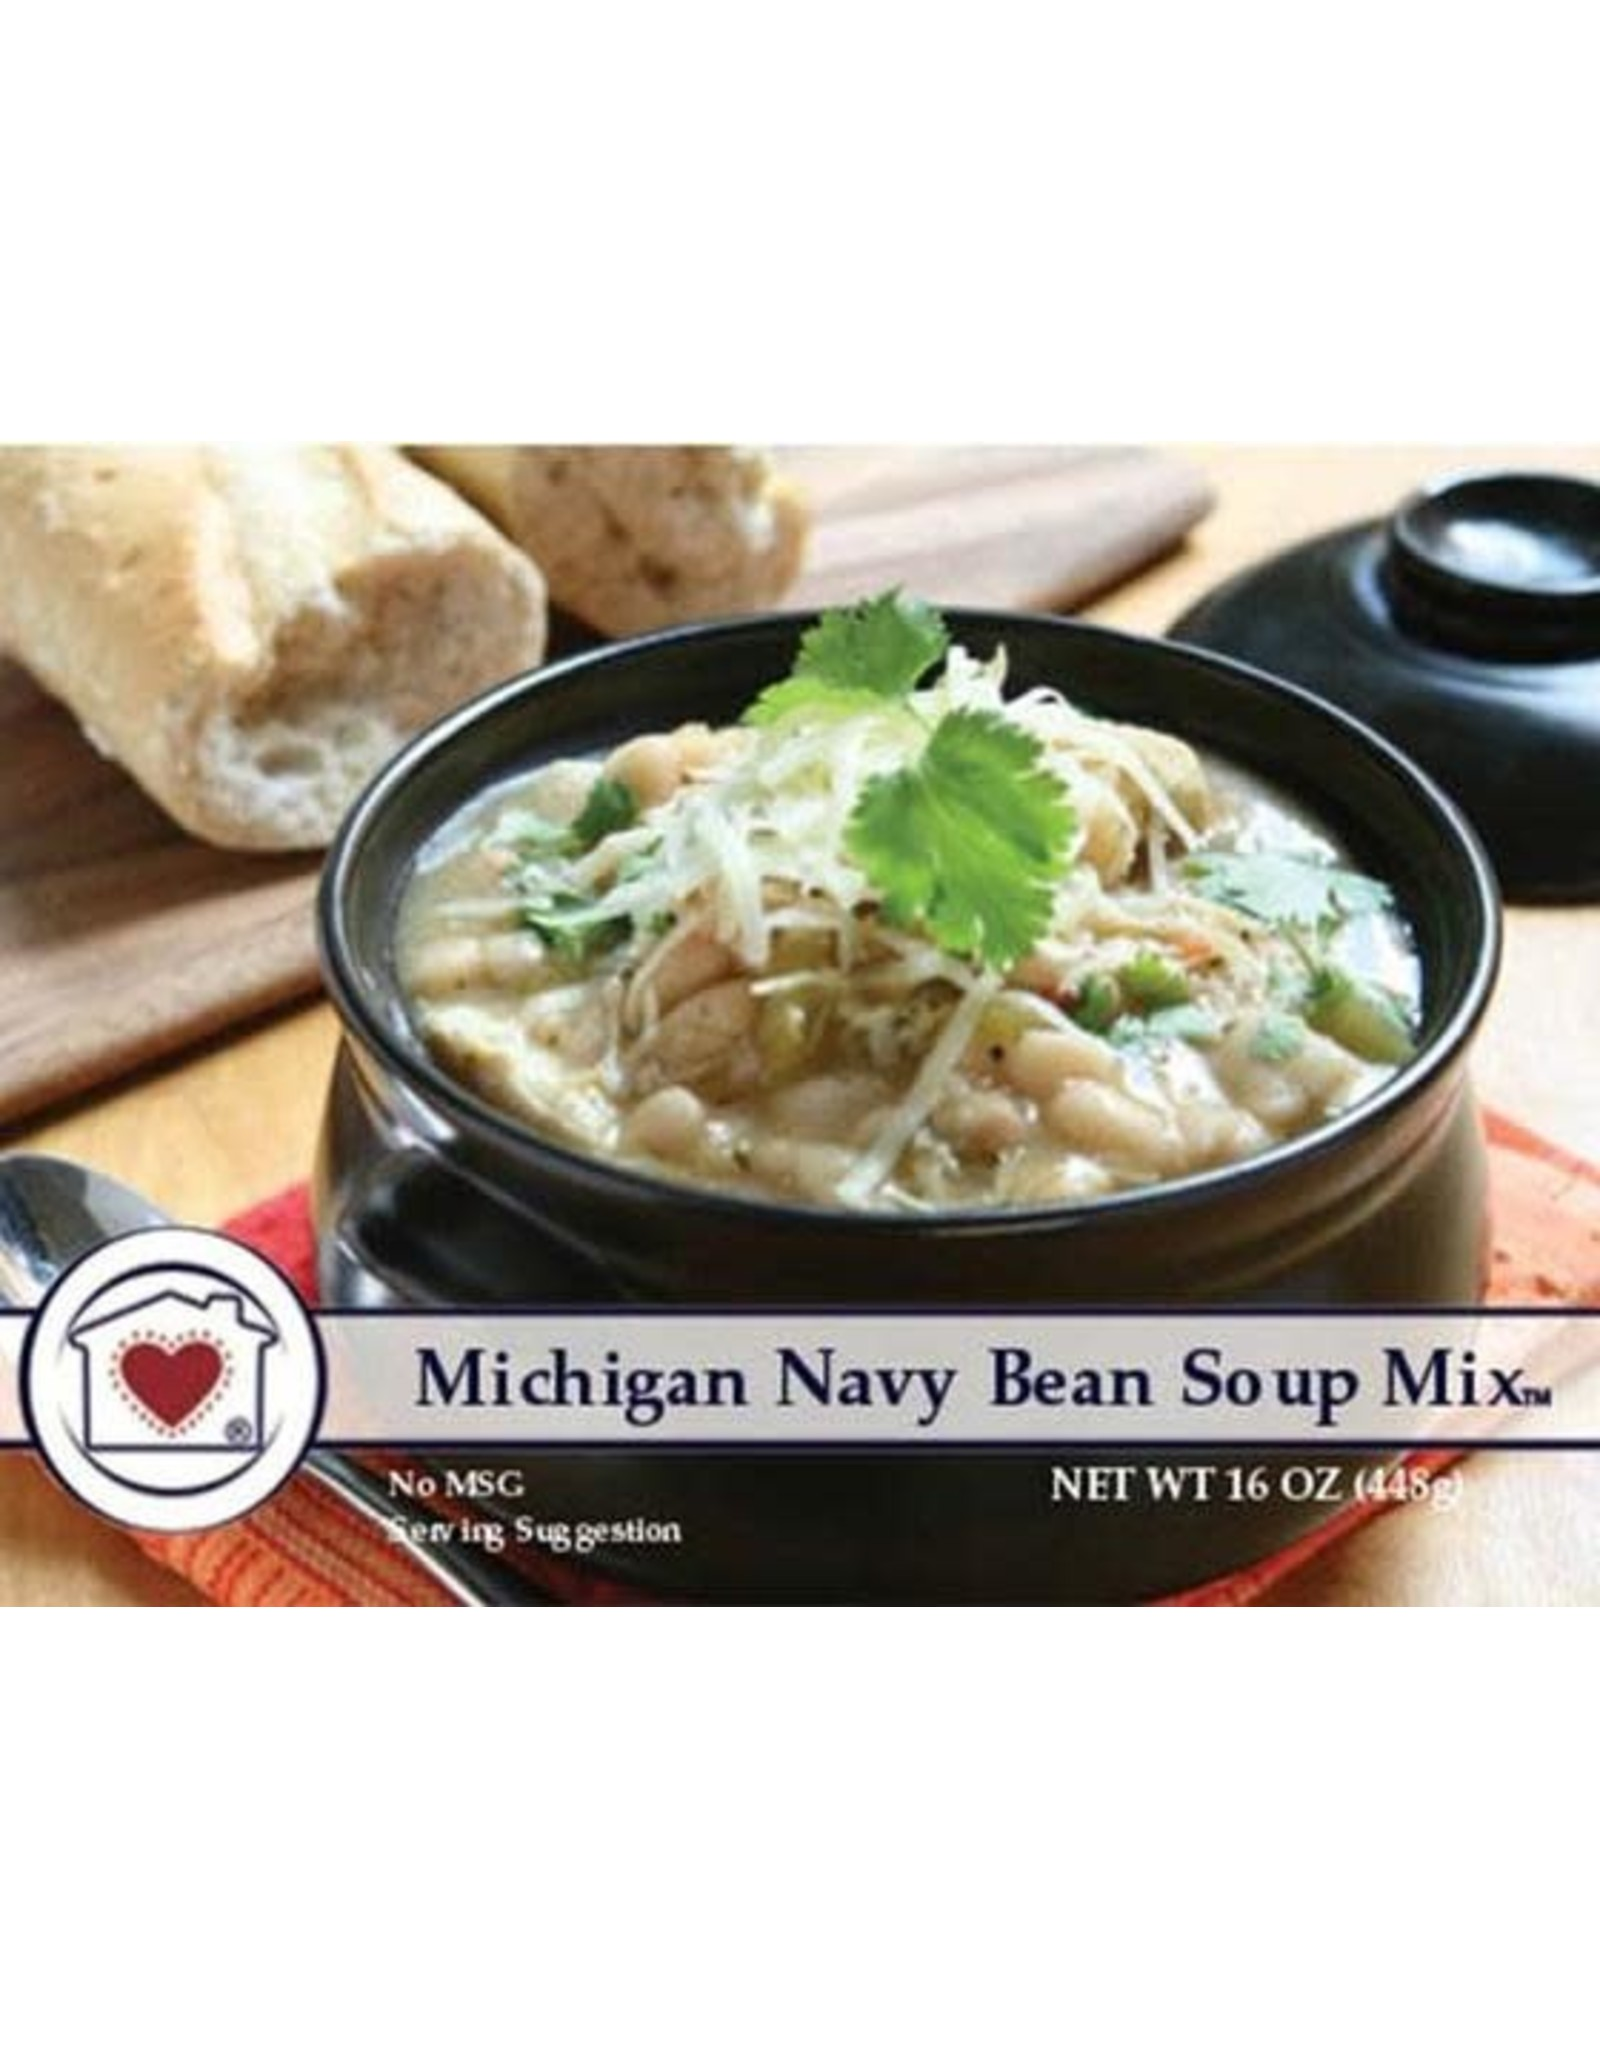 Country Home Creations MICHIGAN NAVY BEAN SOUP